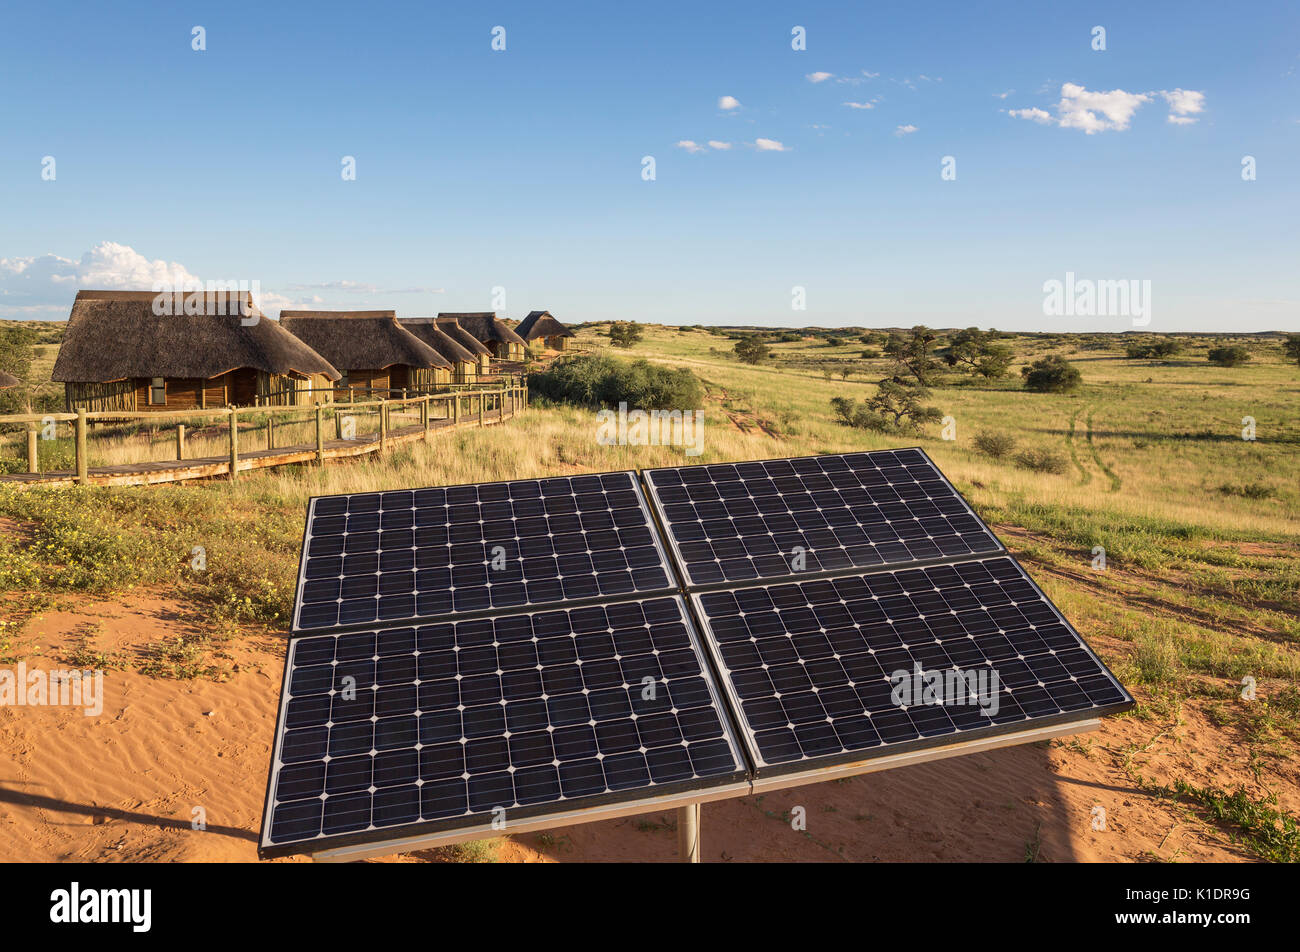 Solar panels near chalets of Rooiputs Lodge, rainy season with green surroundings, Kalahari Desert, Kgalagadi Transfrontier Park - Stock Image